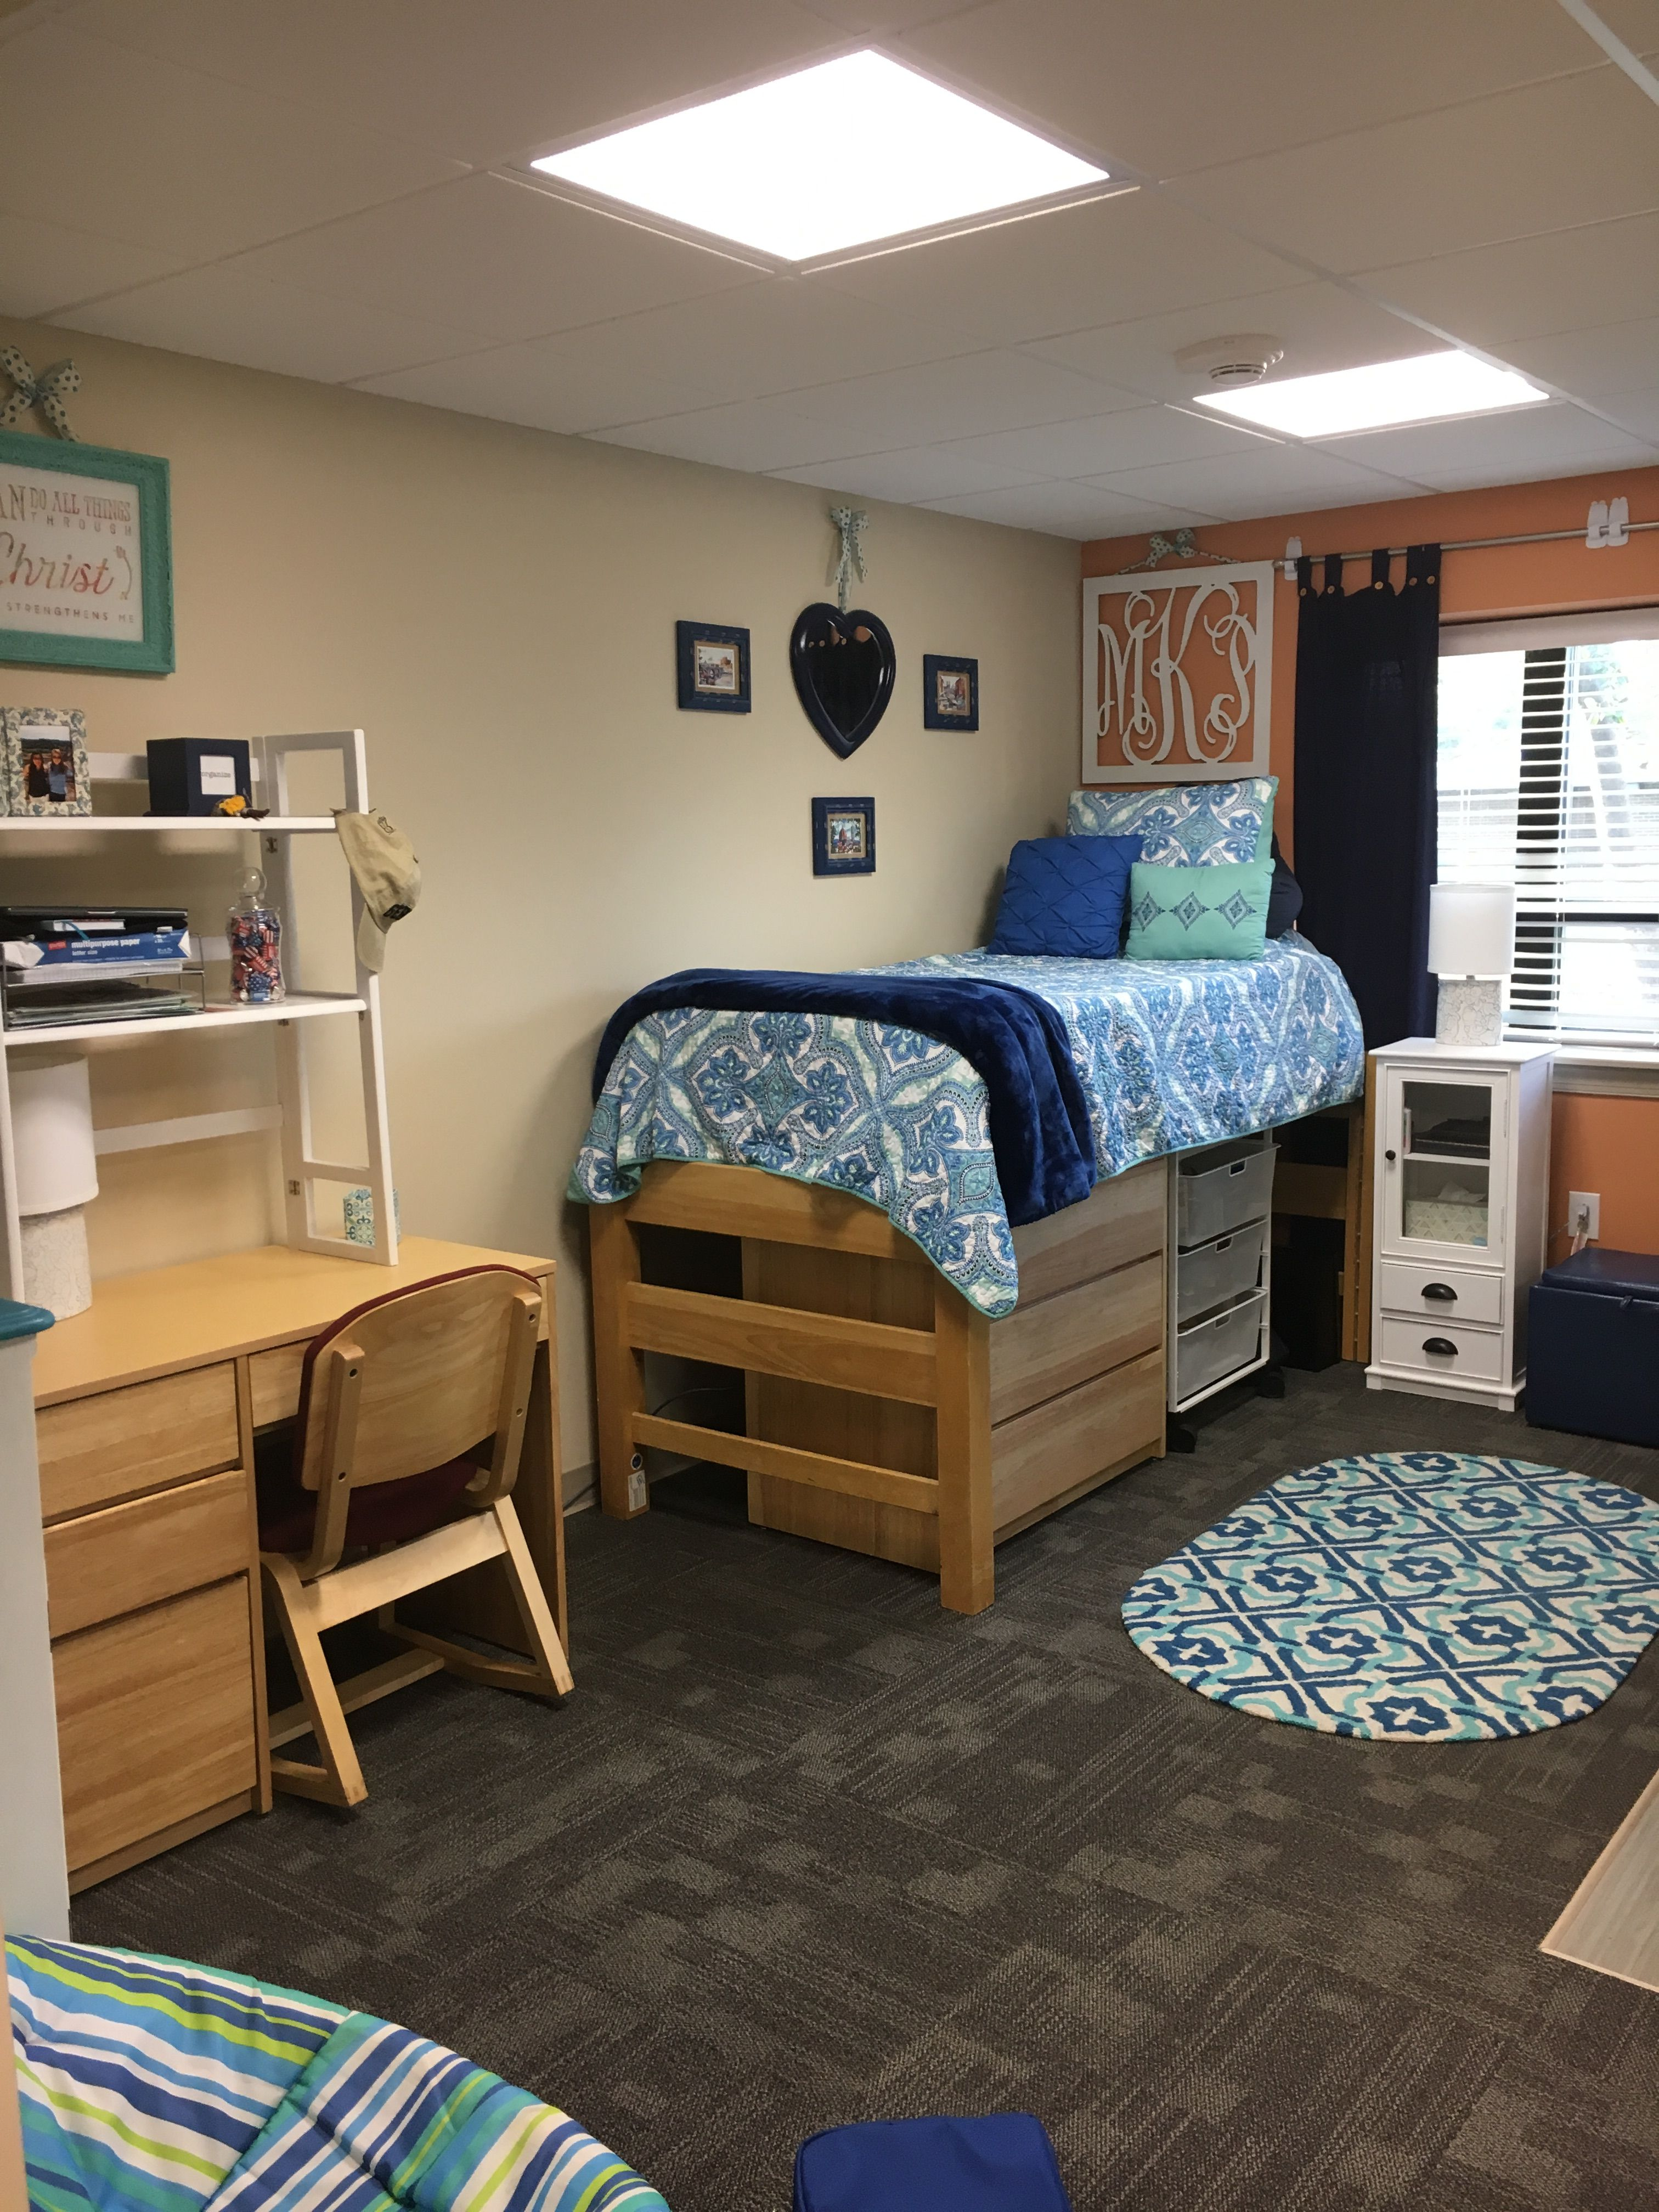 Jones Hall Campbell University Dorm Decor In 2019 Dorm